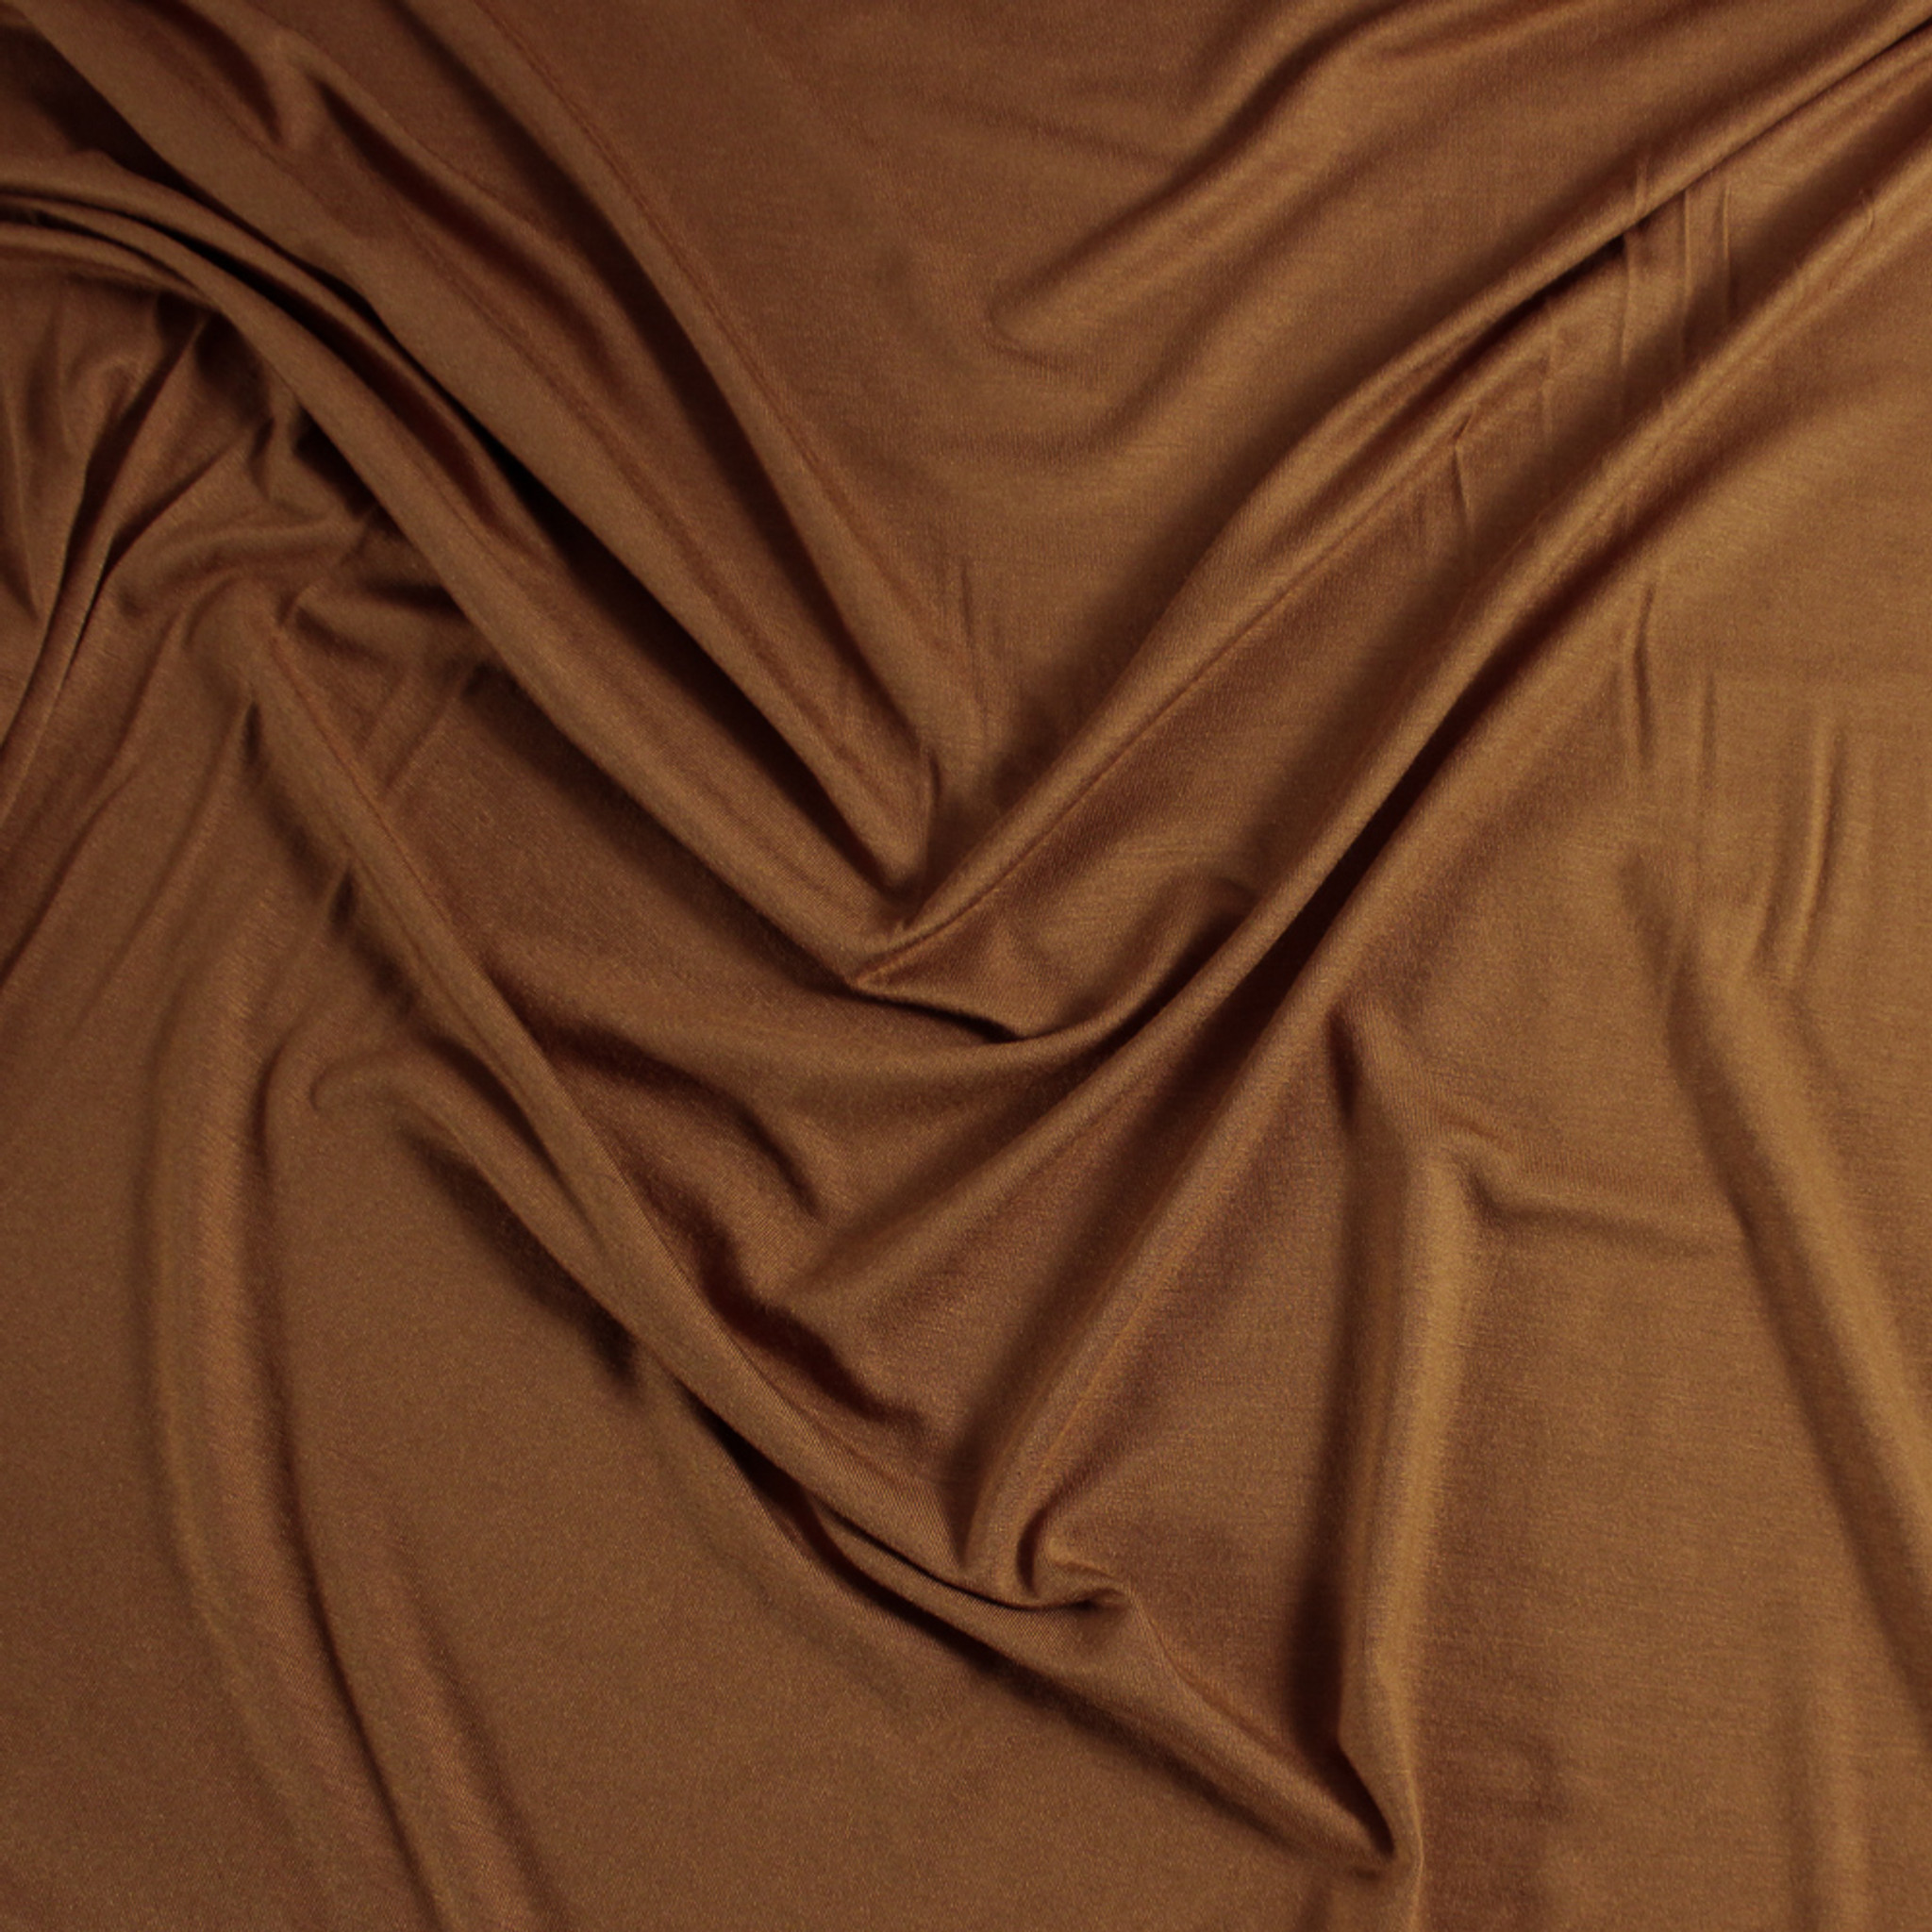 8a29321216e Modal Jersey Knit - Copper | Blackbird Fabrics